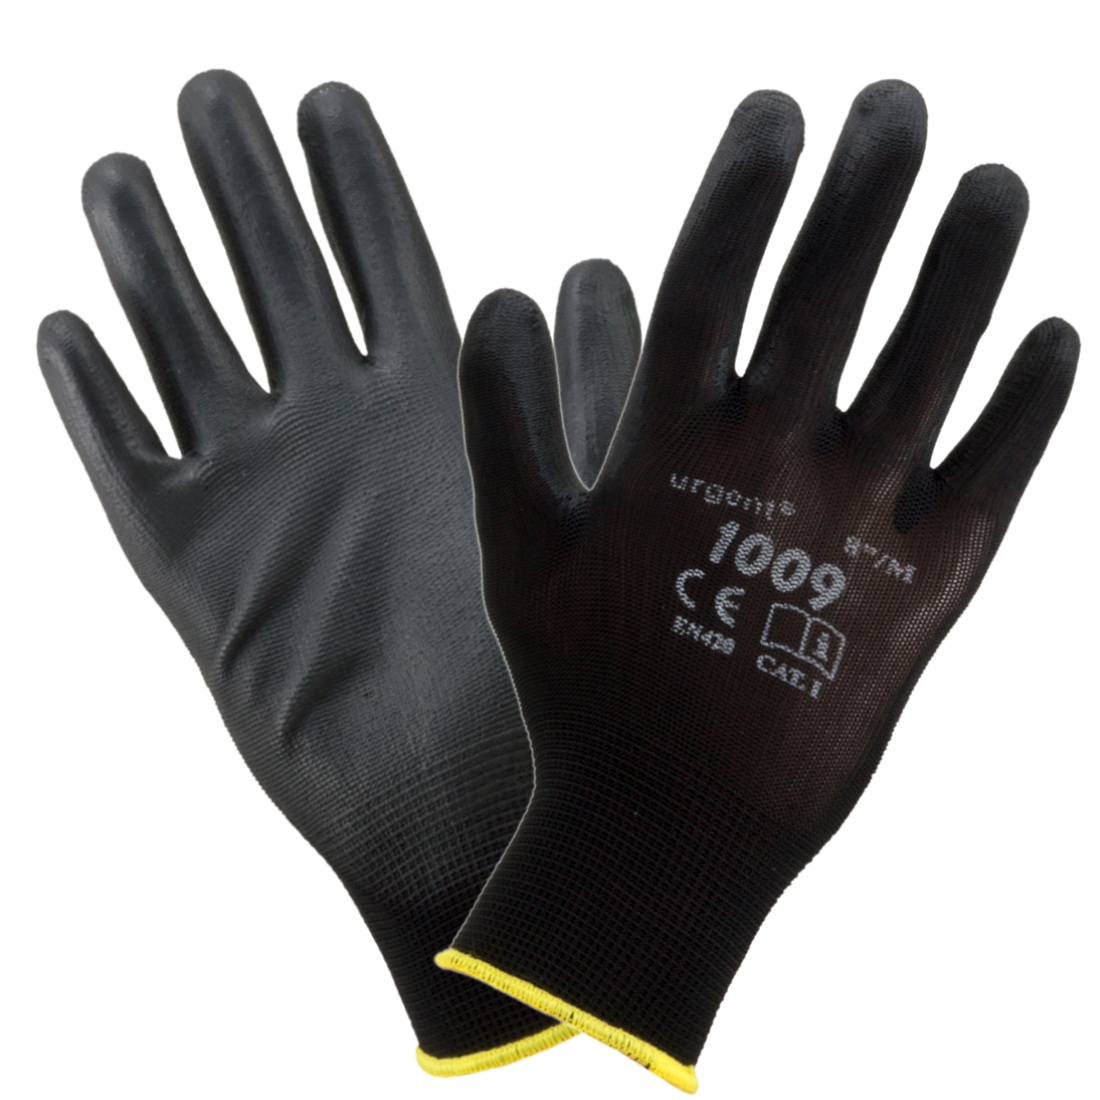 24 pairs of strong coated latex work gloves grade 1